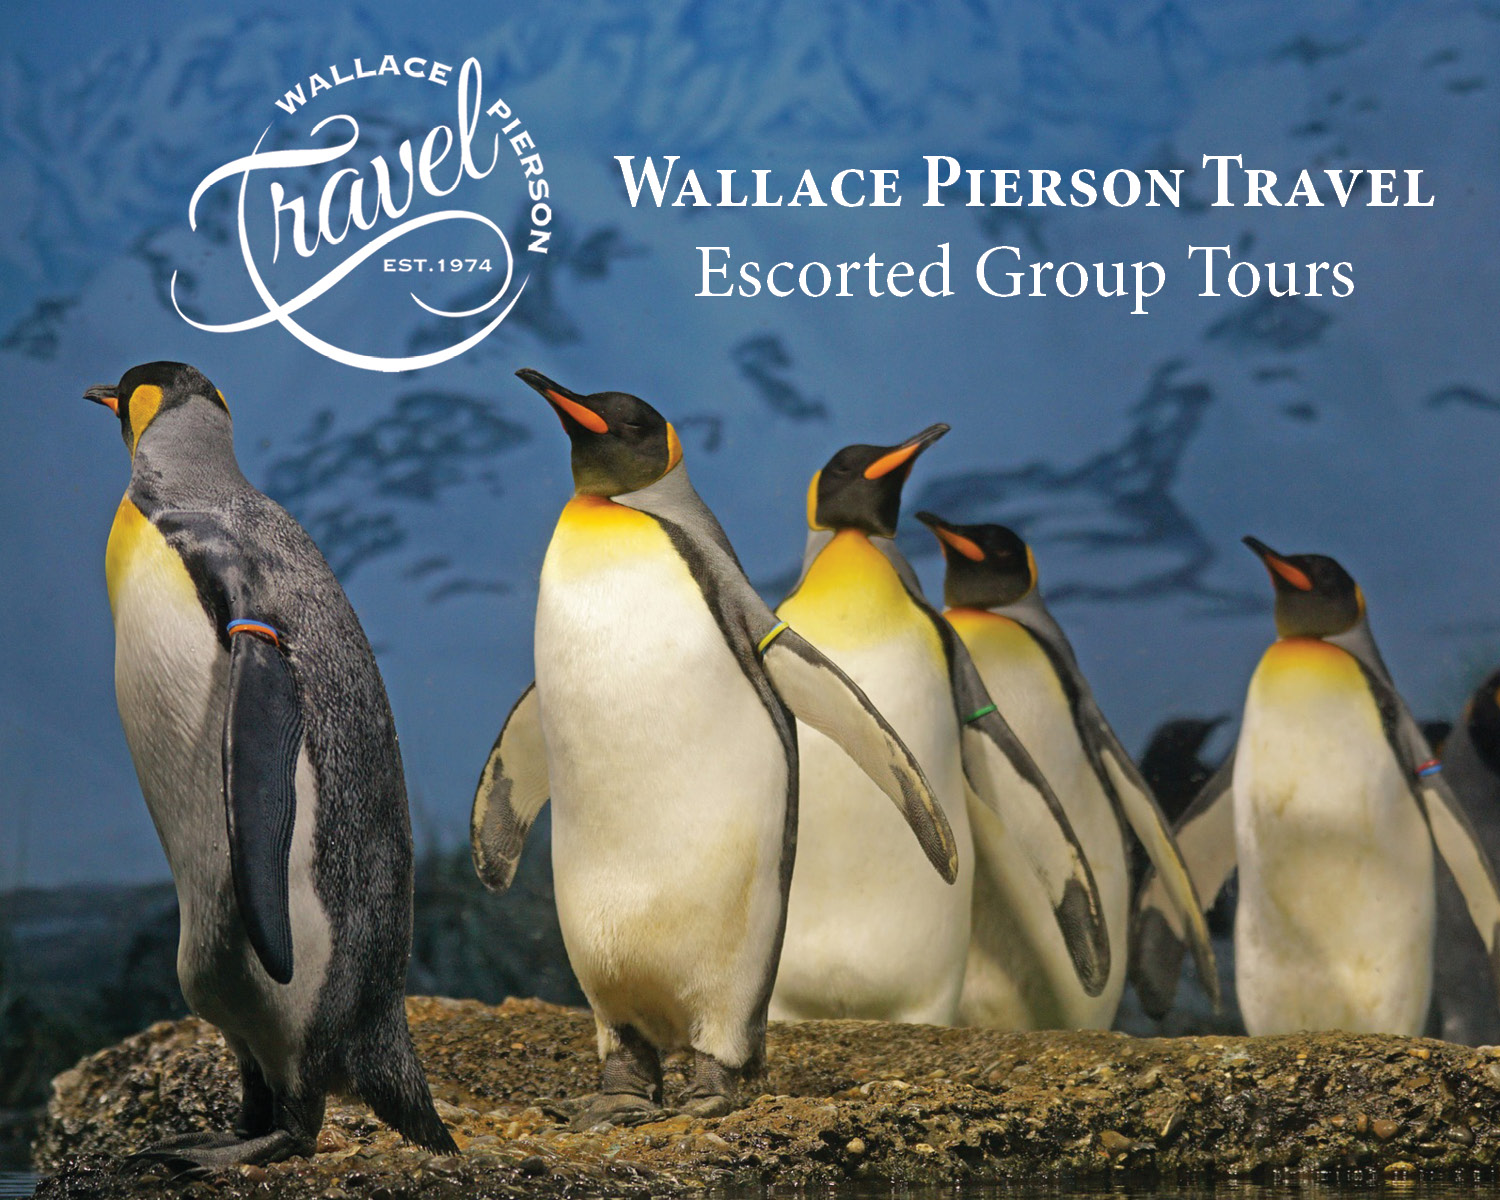 Escorted Group Tours 107